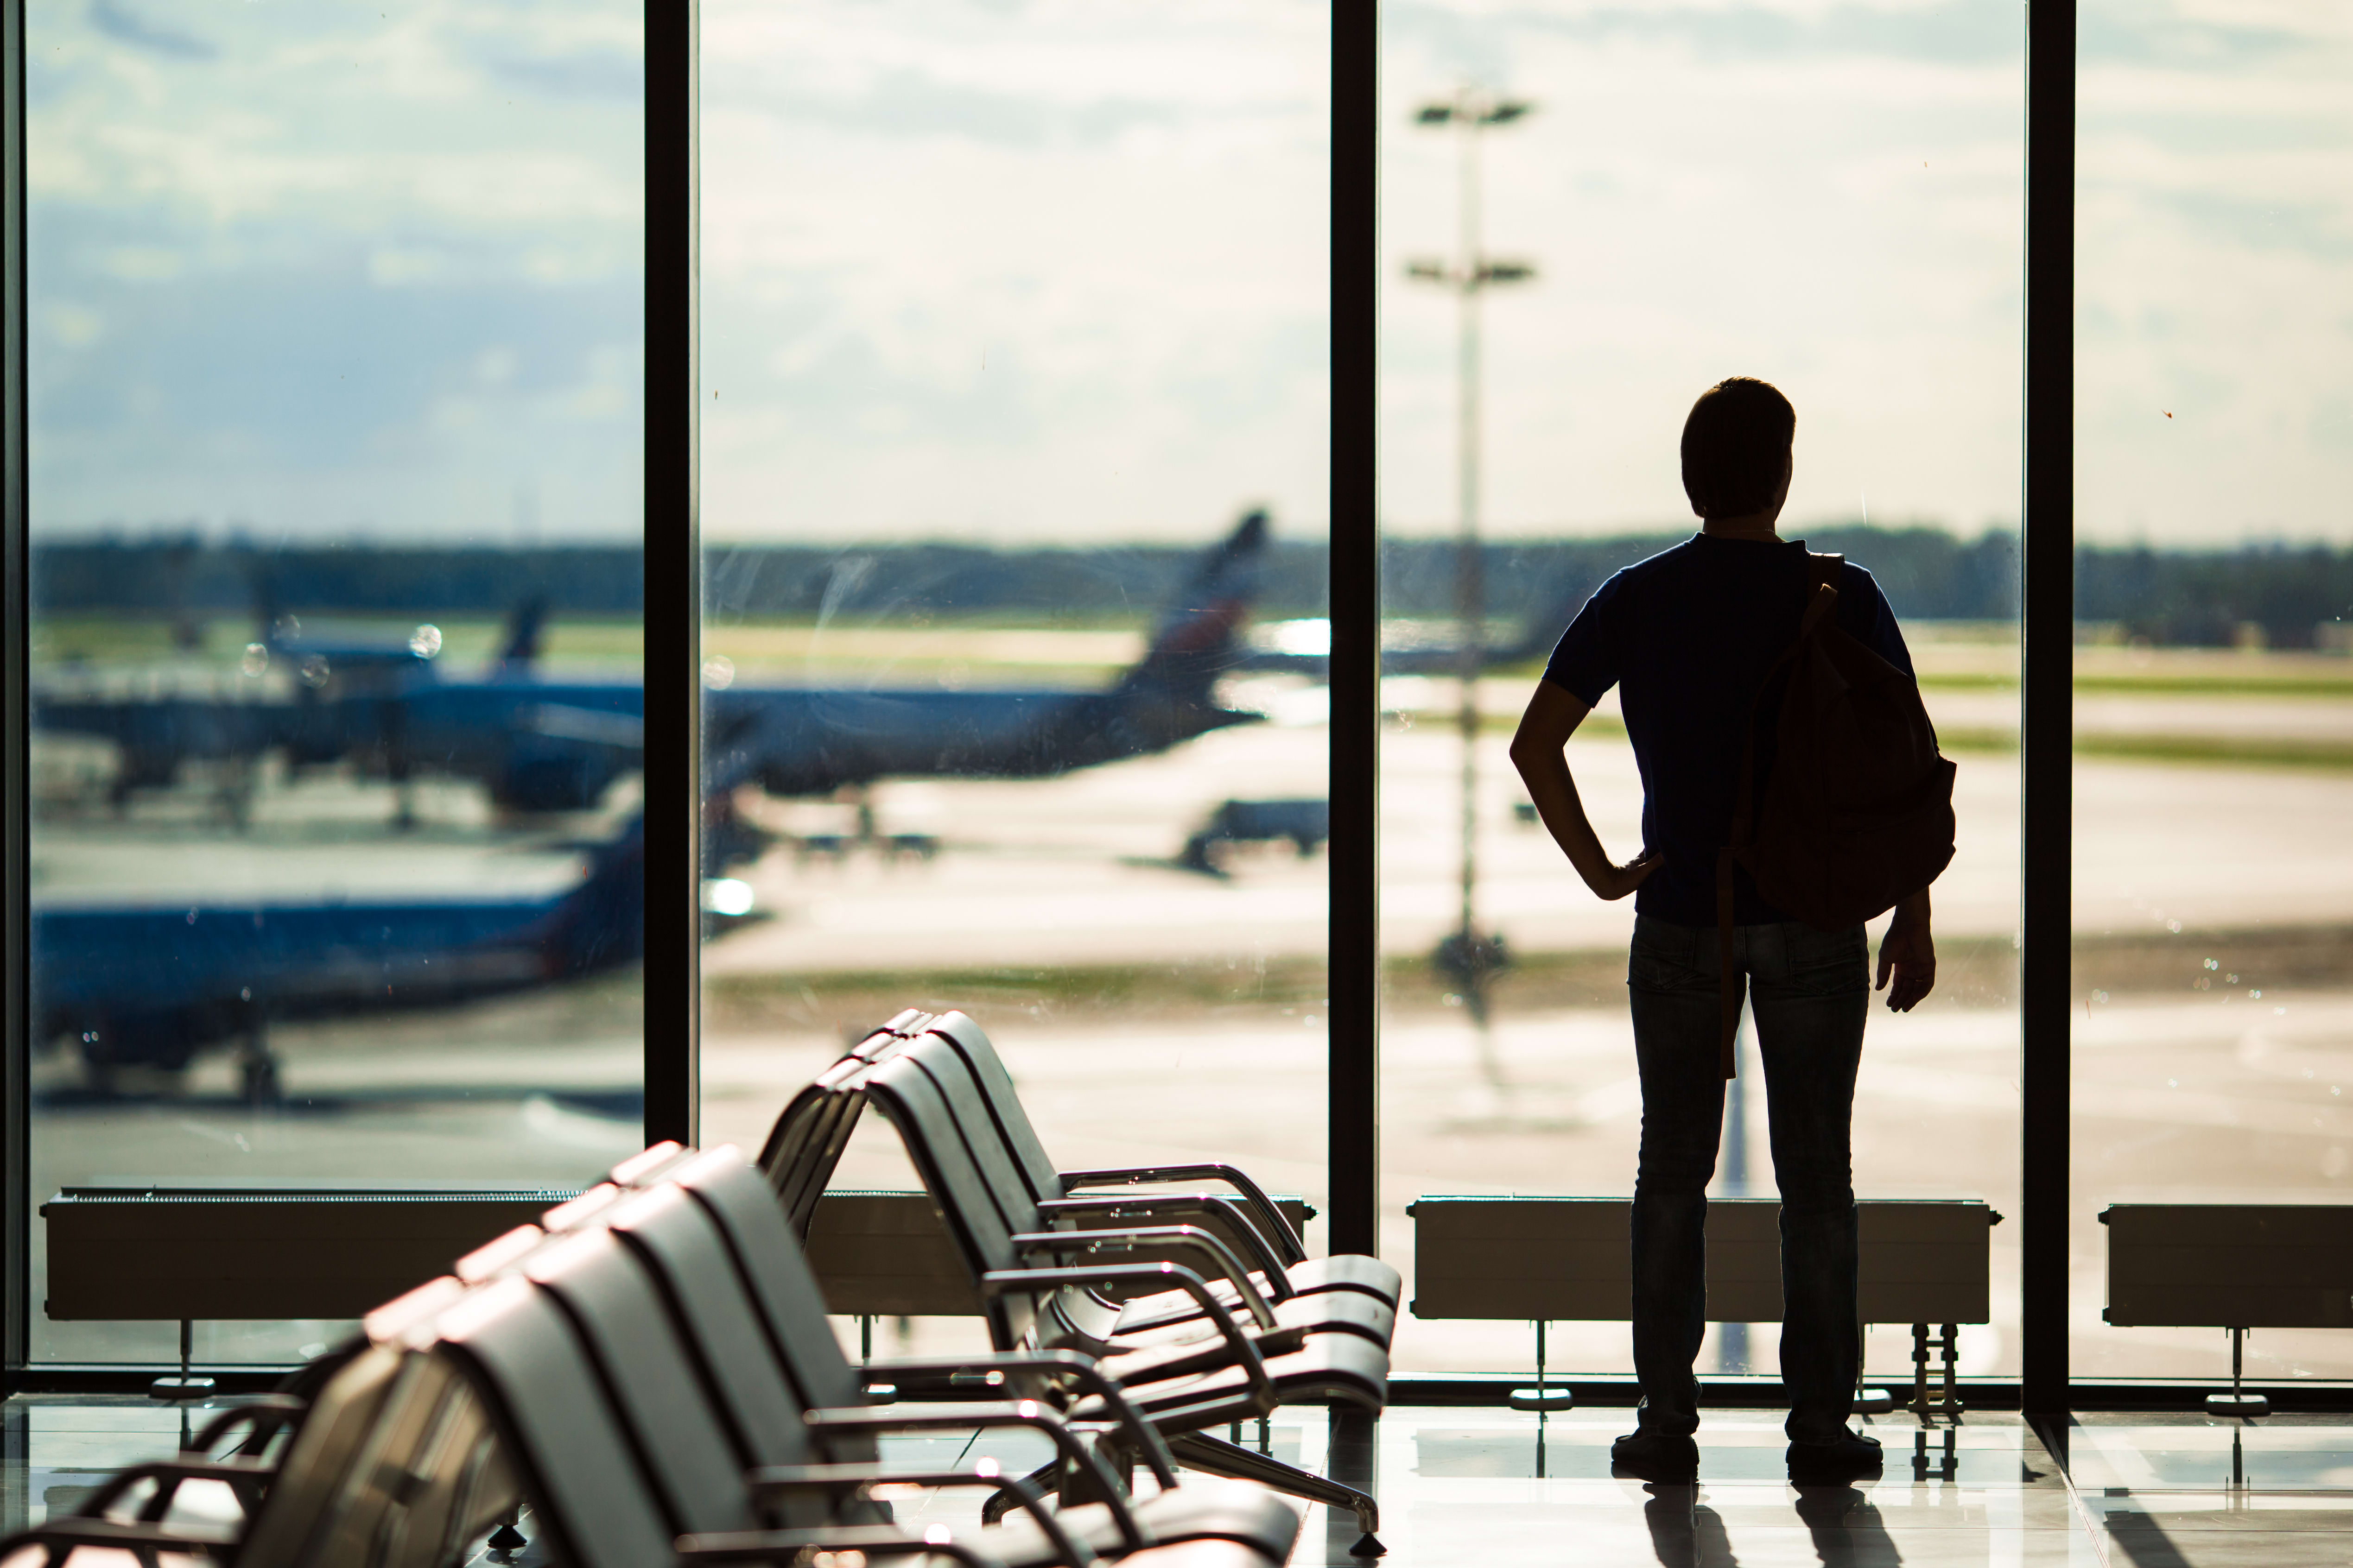 Man gazing out of an airport window at an aeroplane